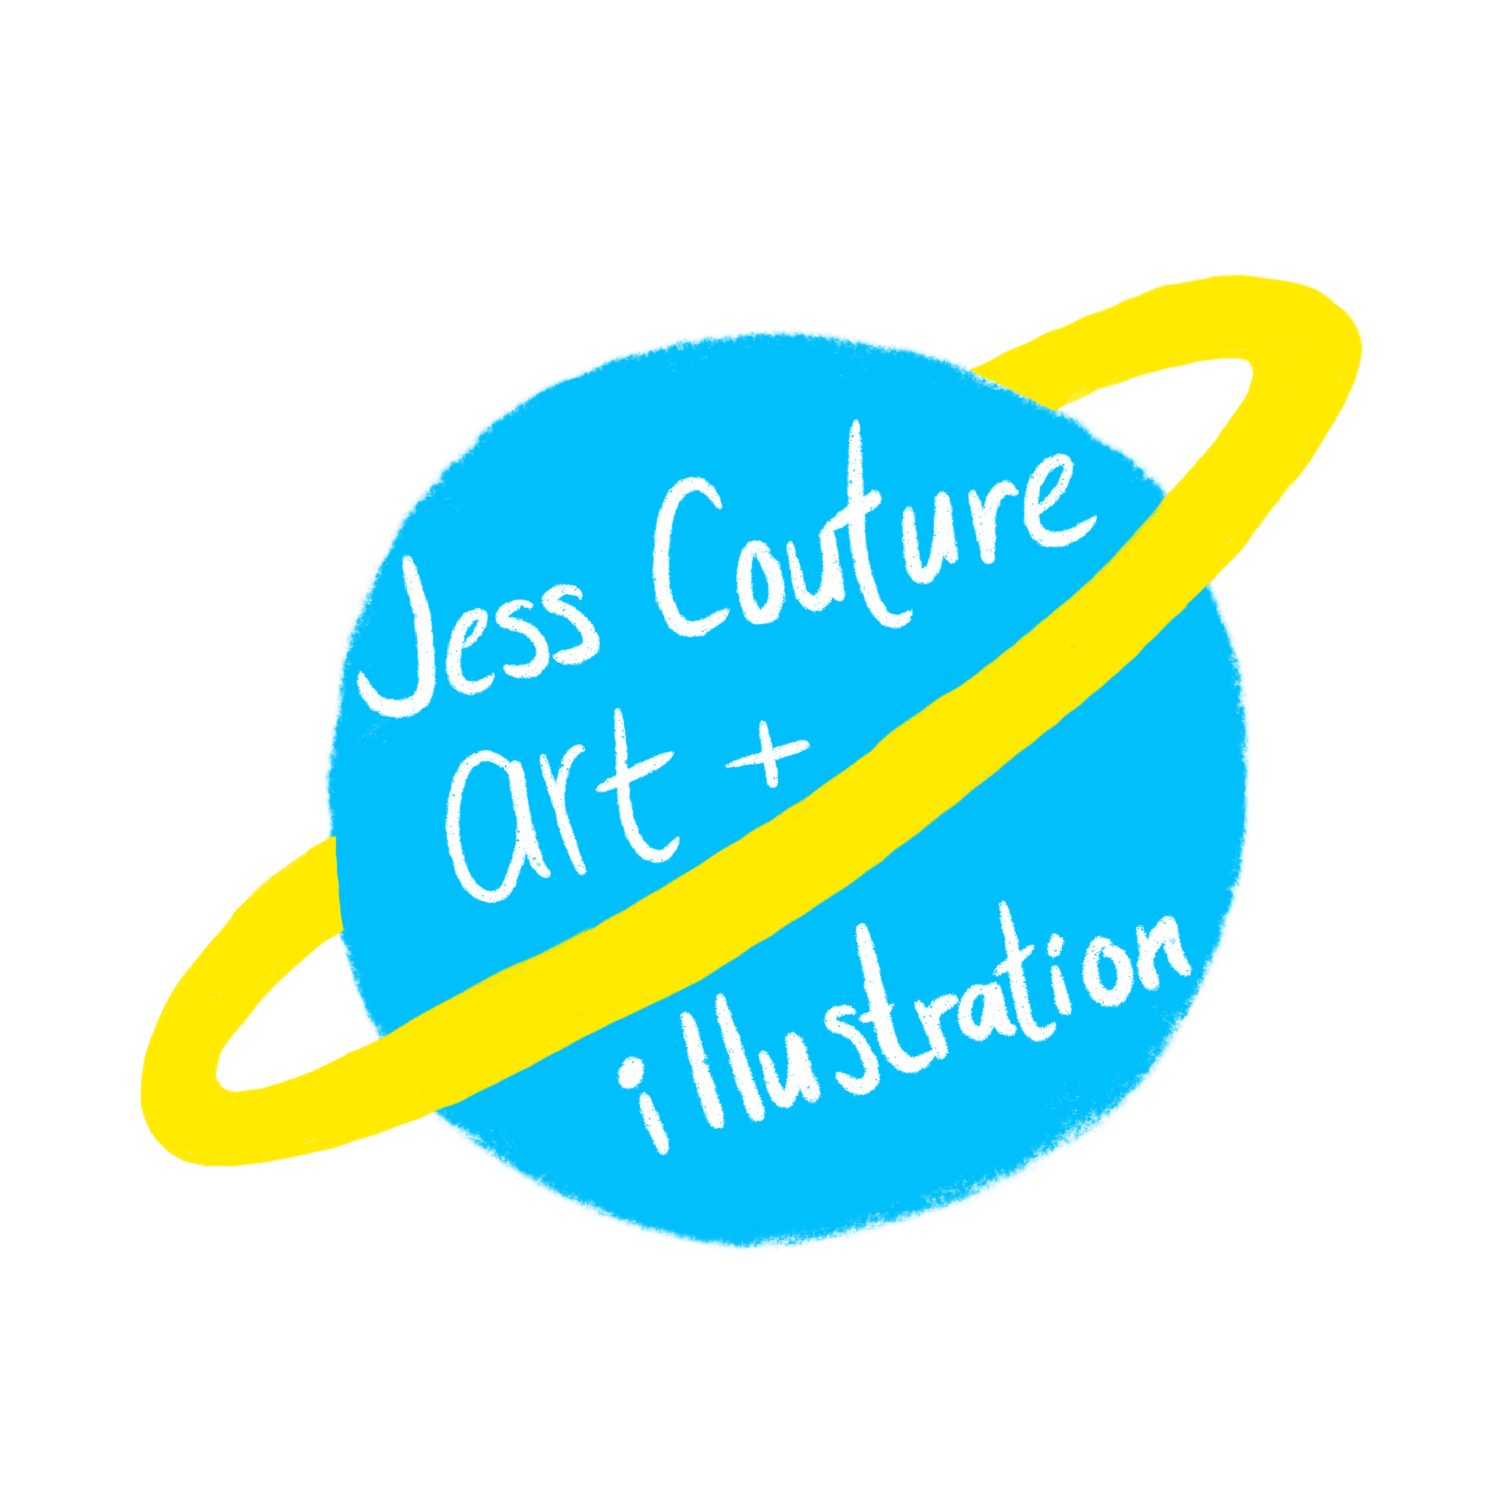 Jess Couture